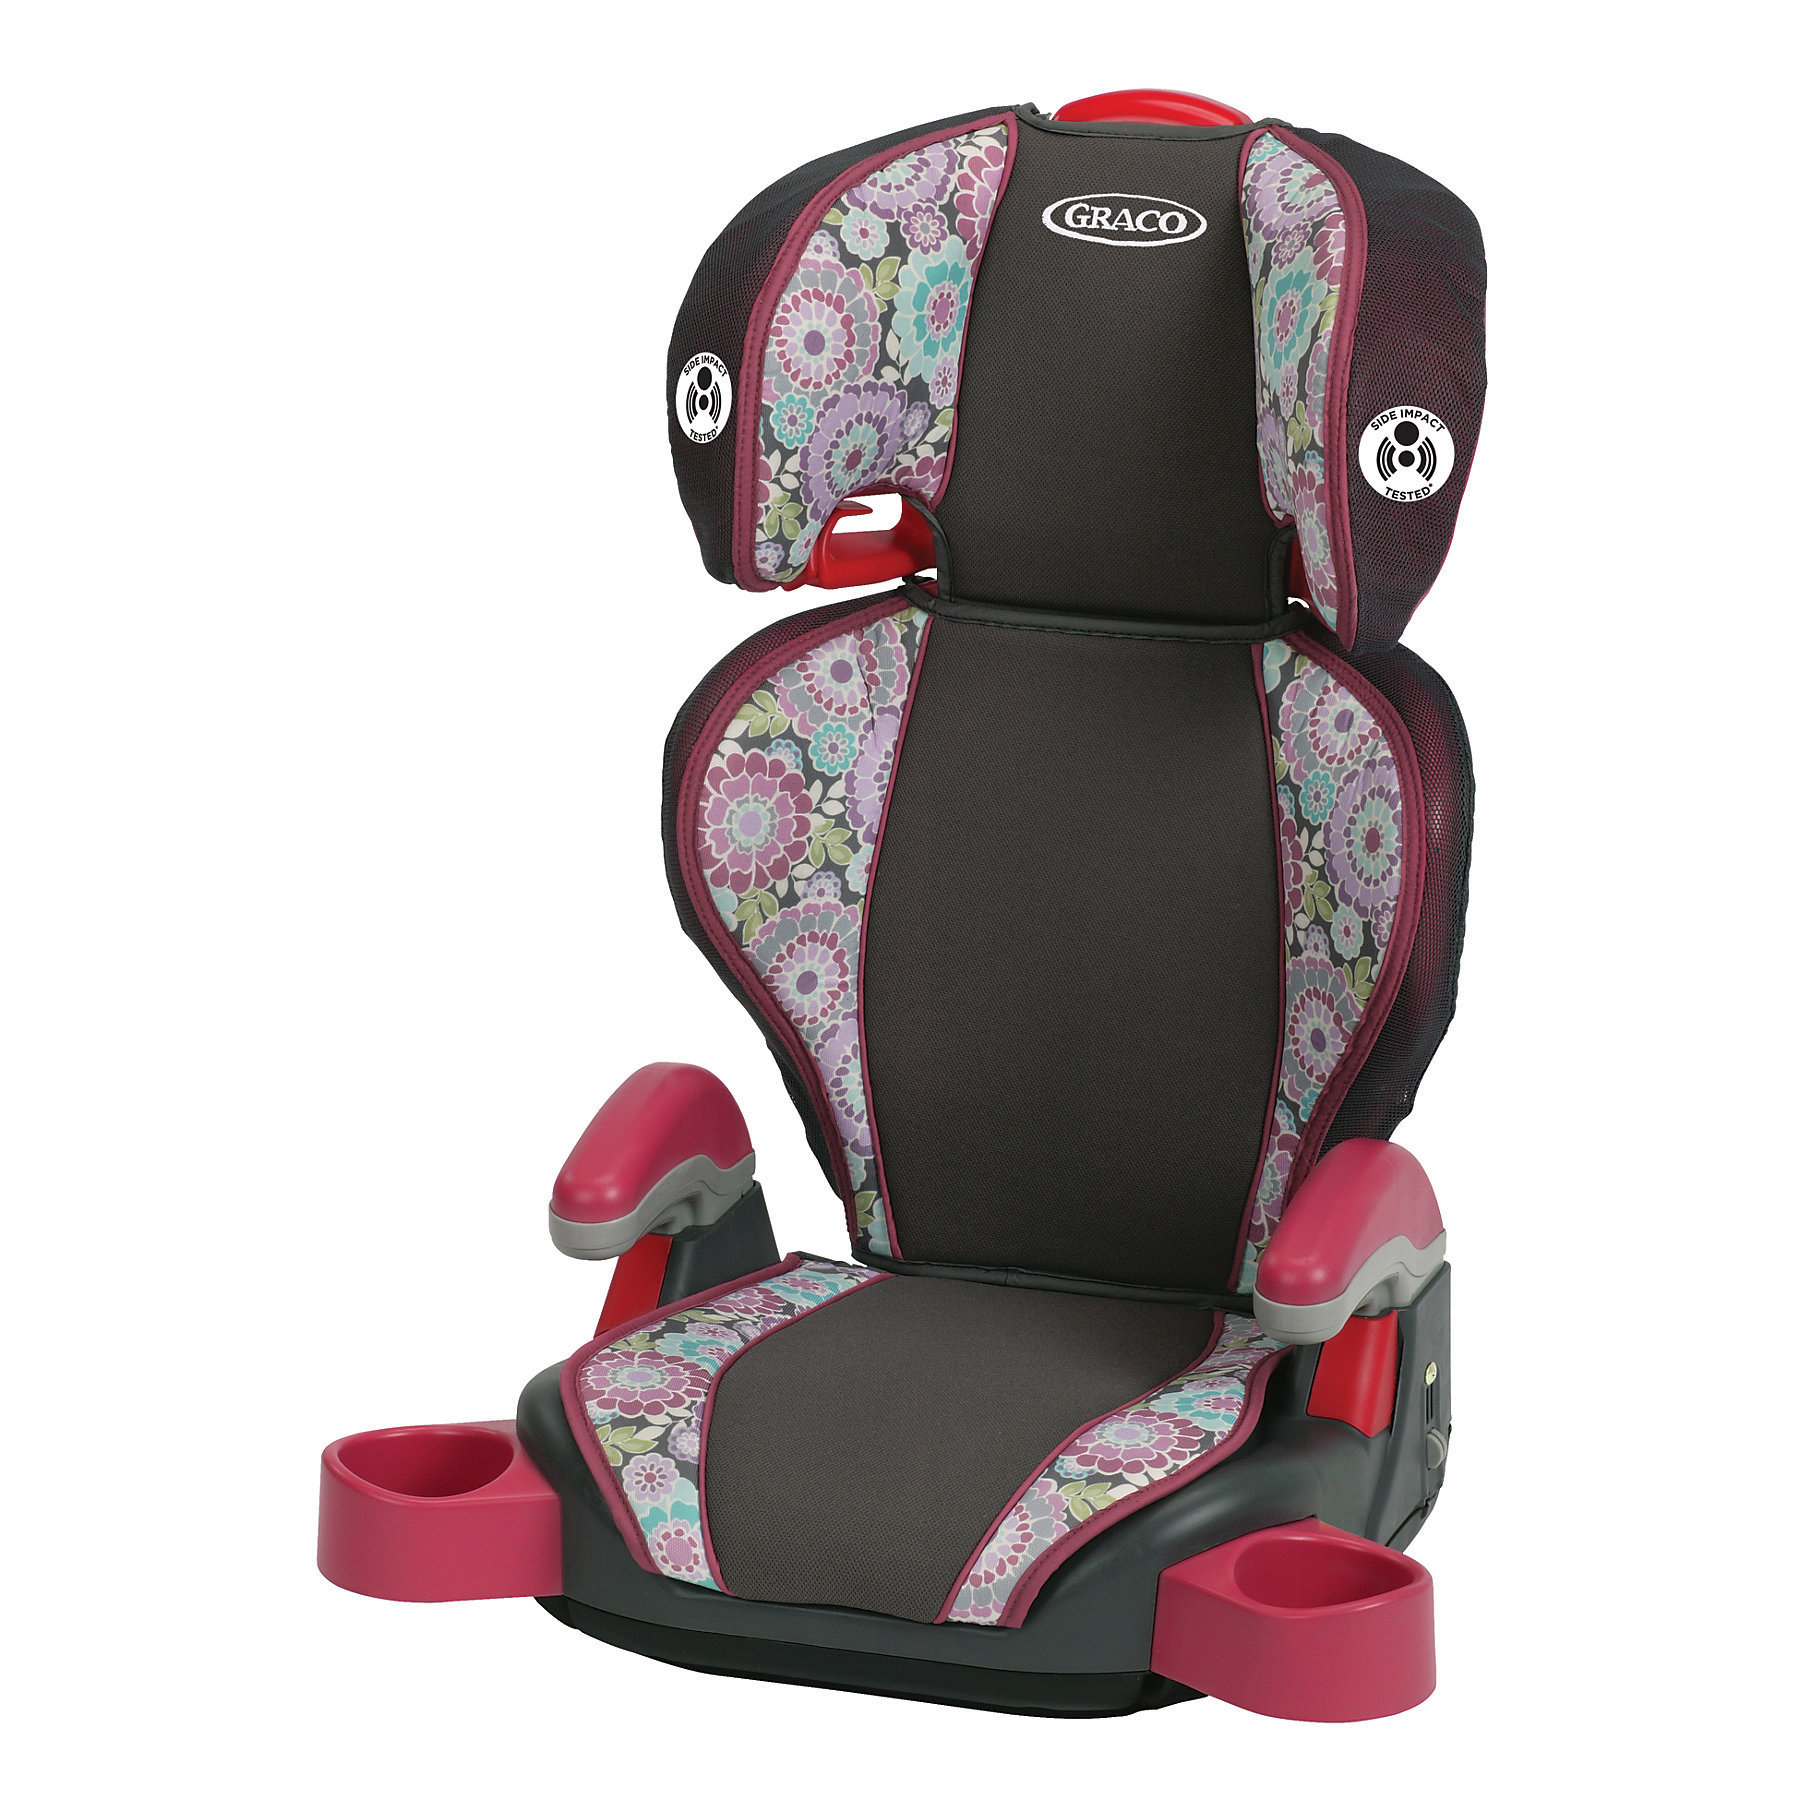 Shop Graco Highback TurboBooster Car Seat In Emille